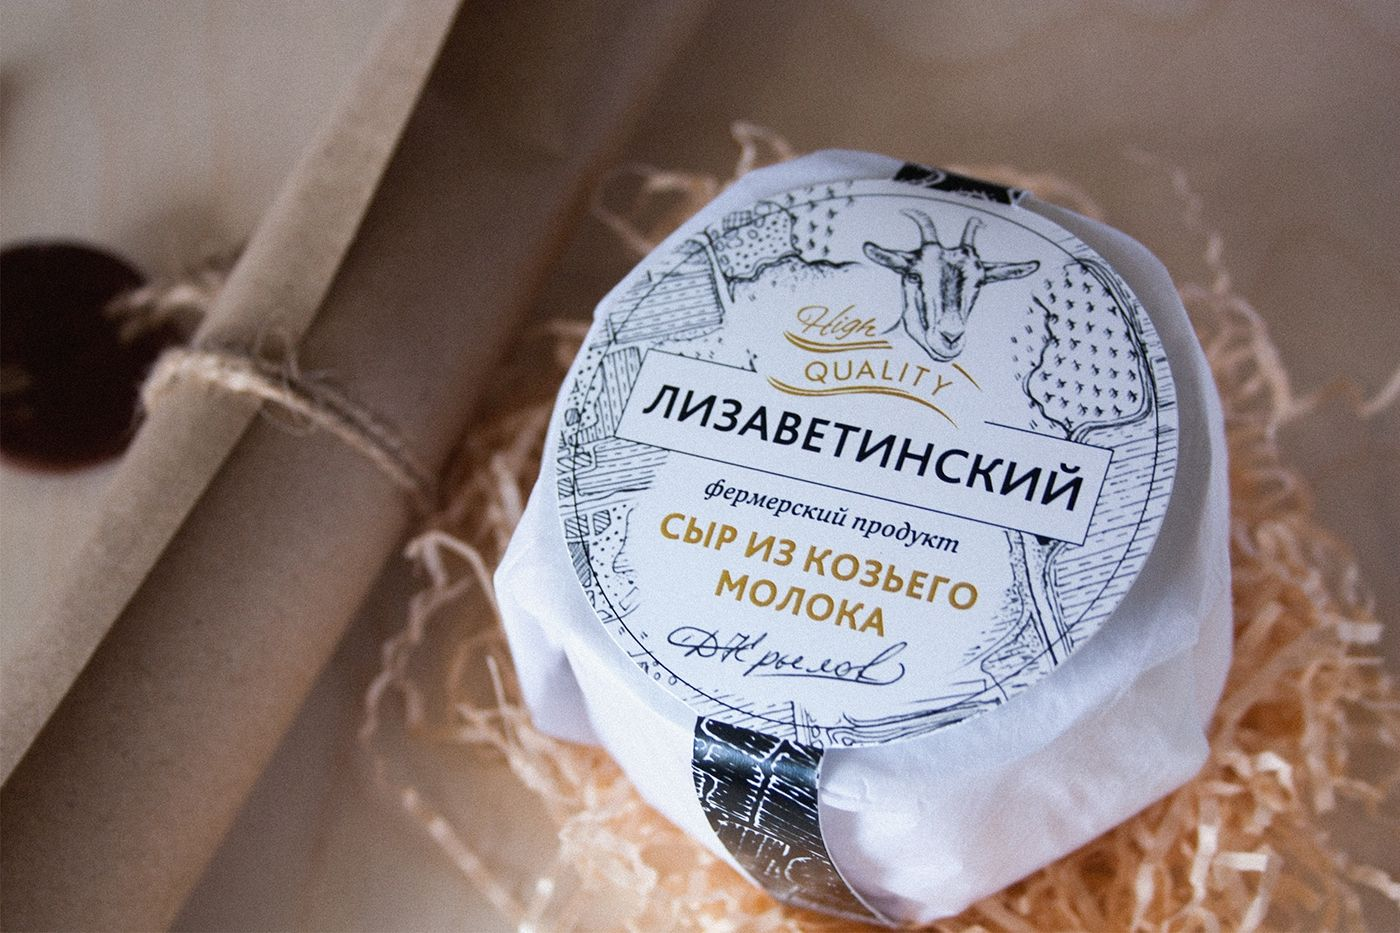 Lizavetinskiy Goat Cheese on Packaging of the World - Creative Package Design Gallery